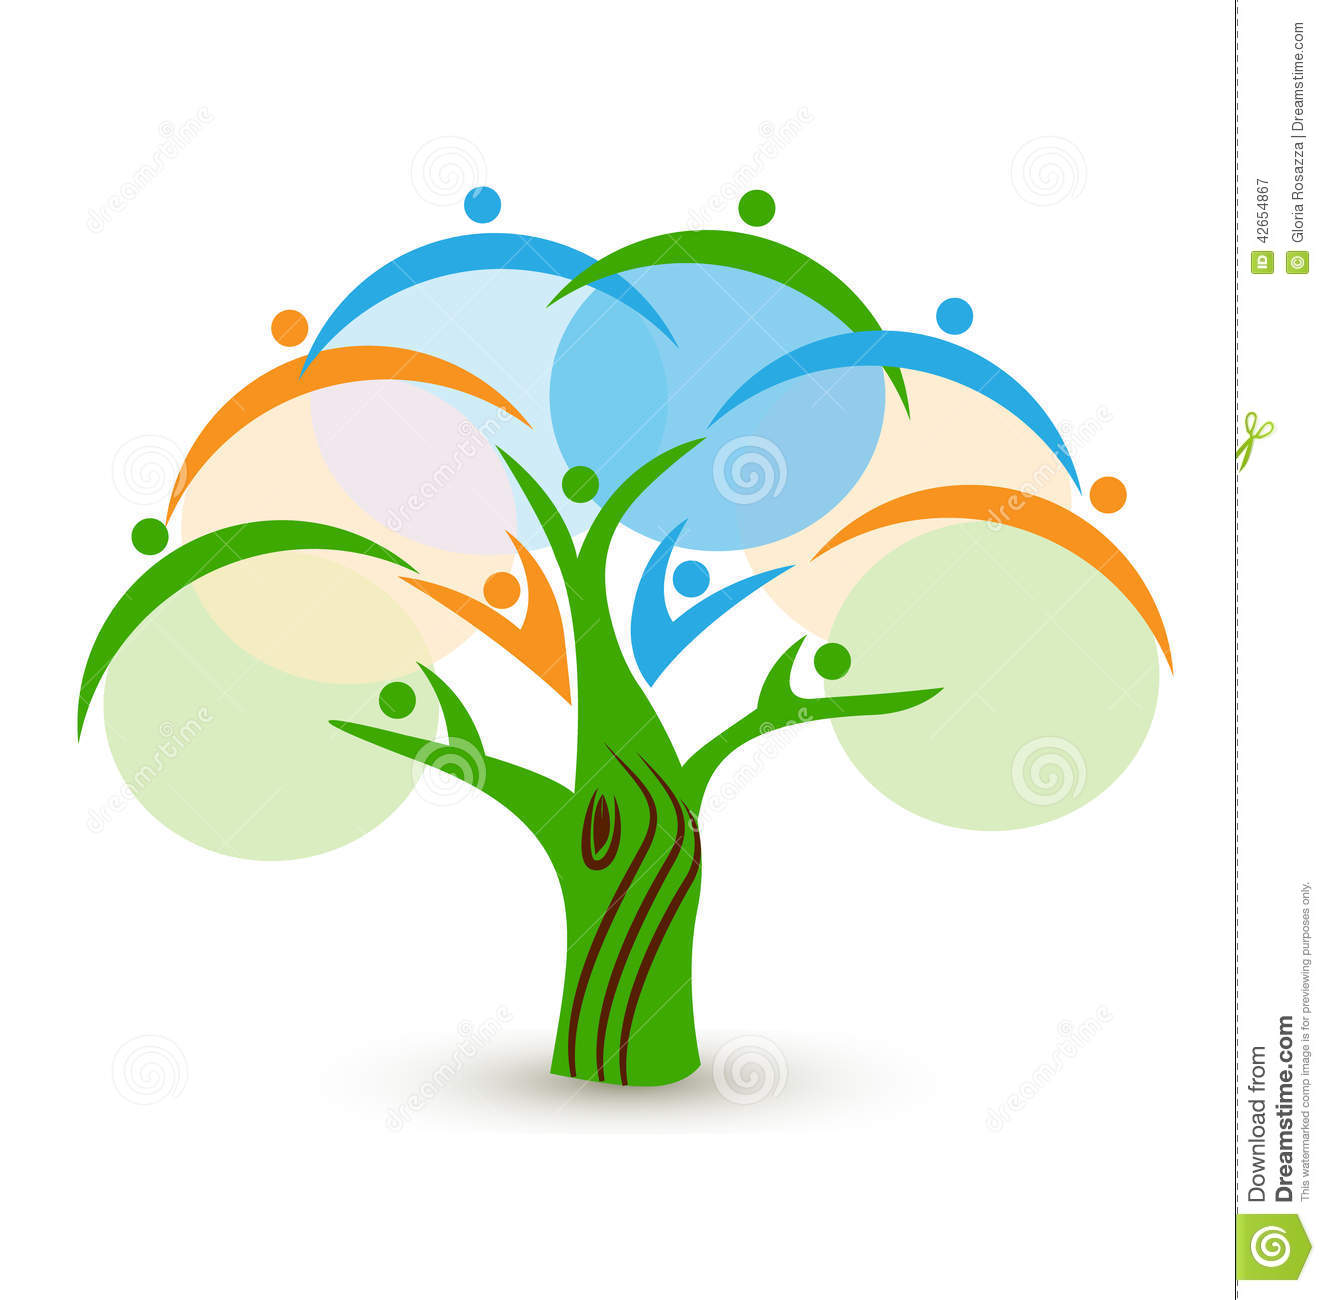 Teamwork People In A Tree Logo Stock Vector Image 42654867